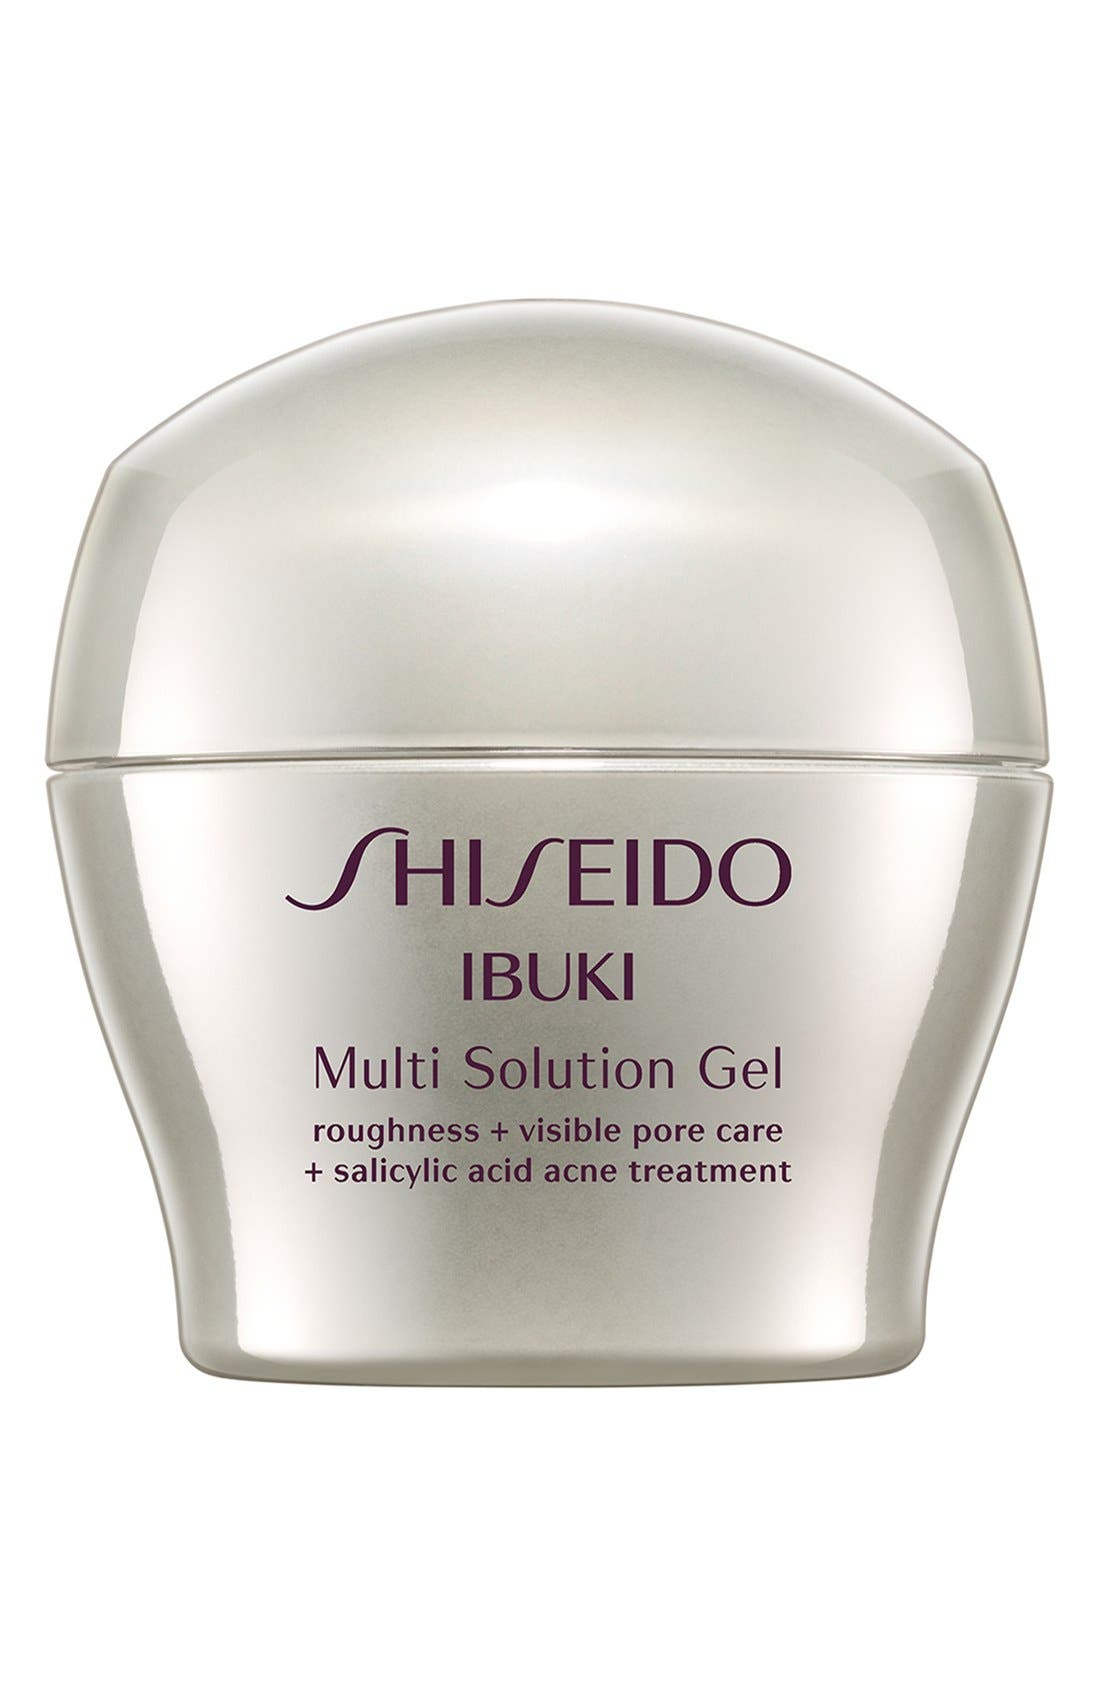 Shiseido 'Ibuki' Multi Solution Gel